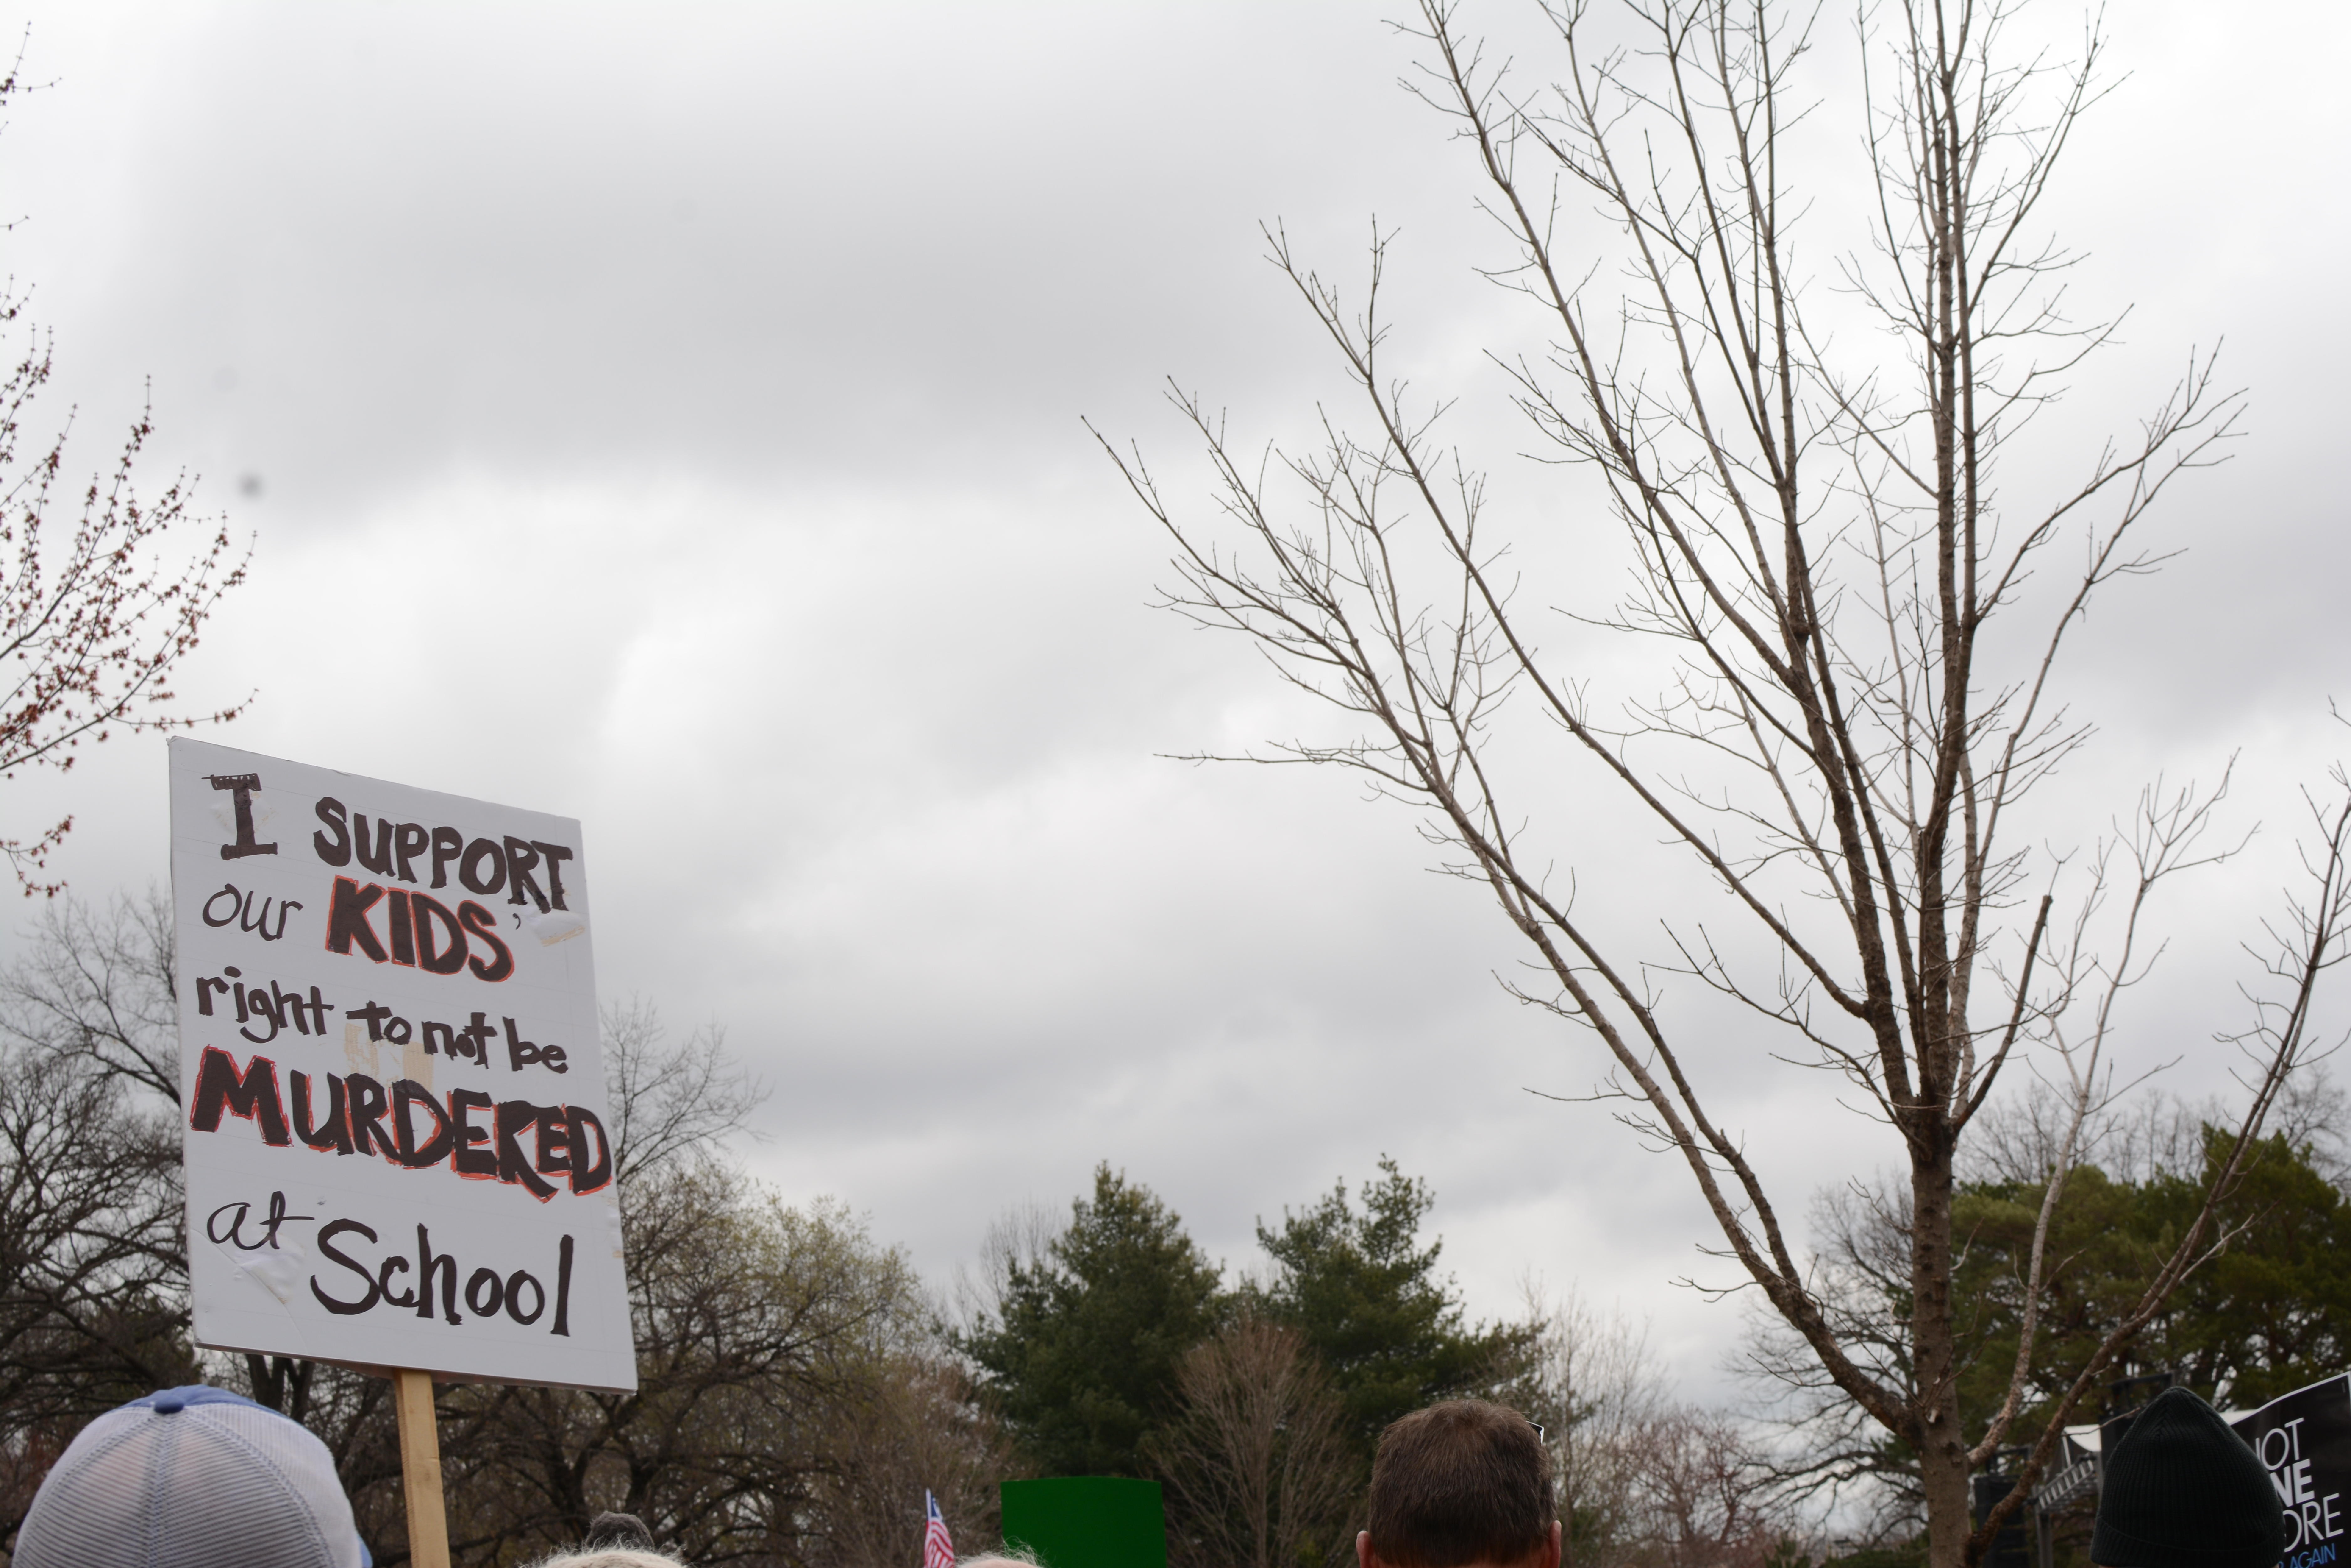 A+sign+reads%2C+%22I+support+our+kids+right+to+not+be+murdered+at+school.%22